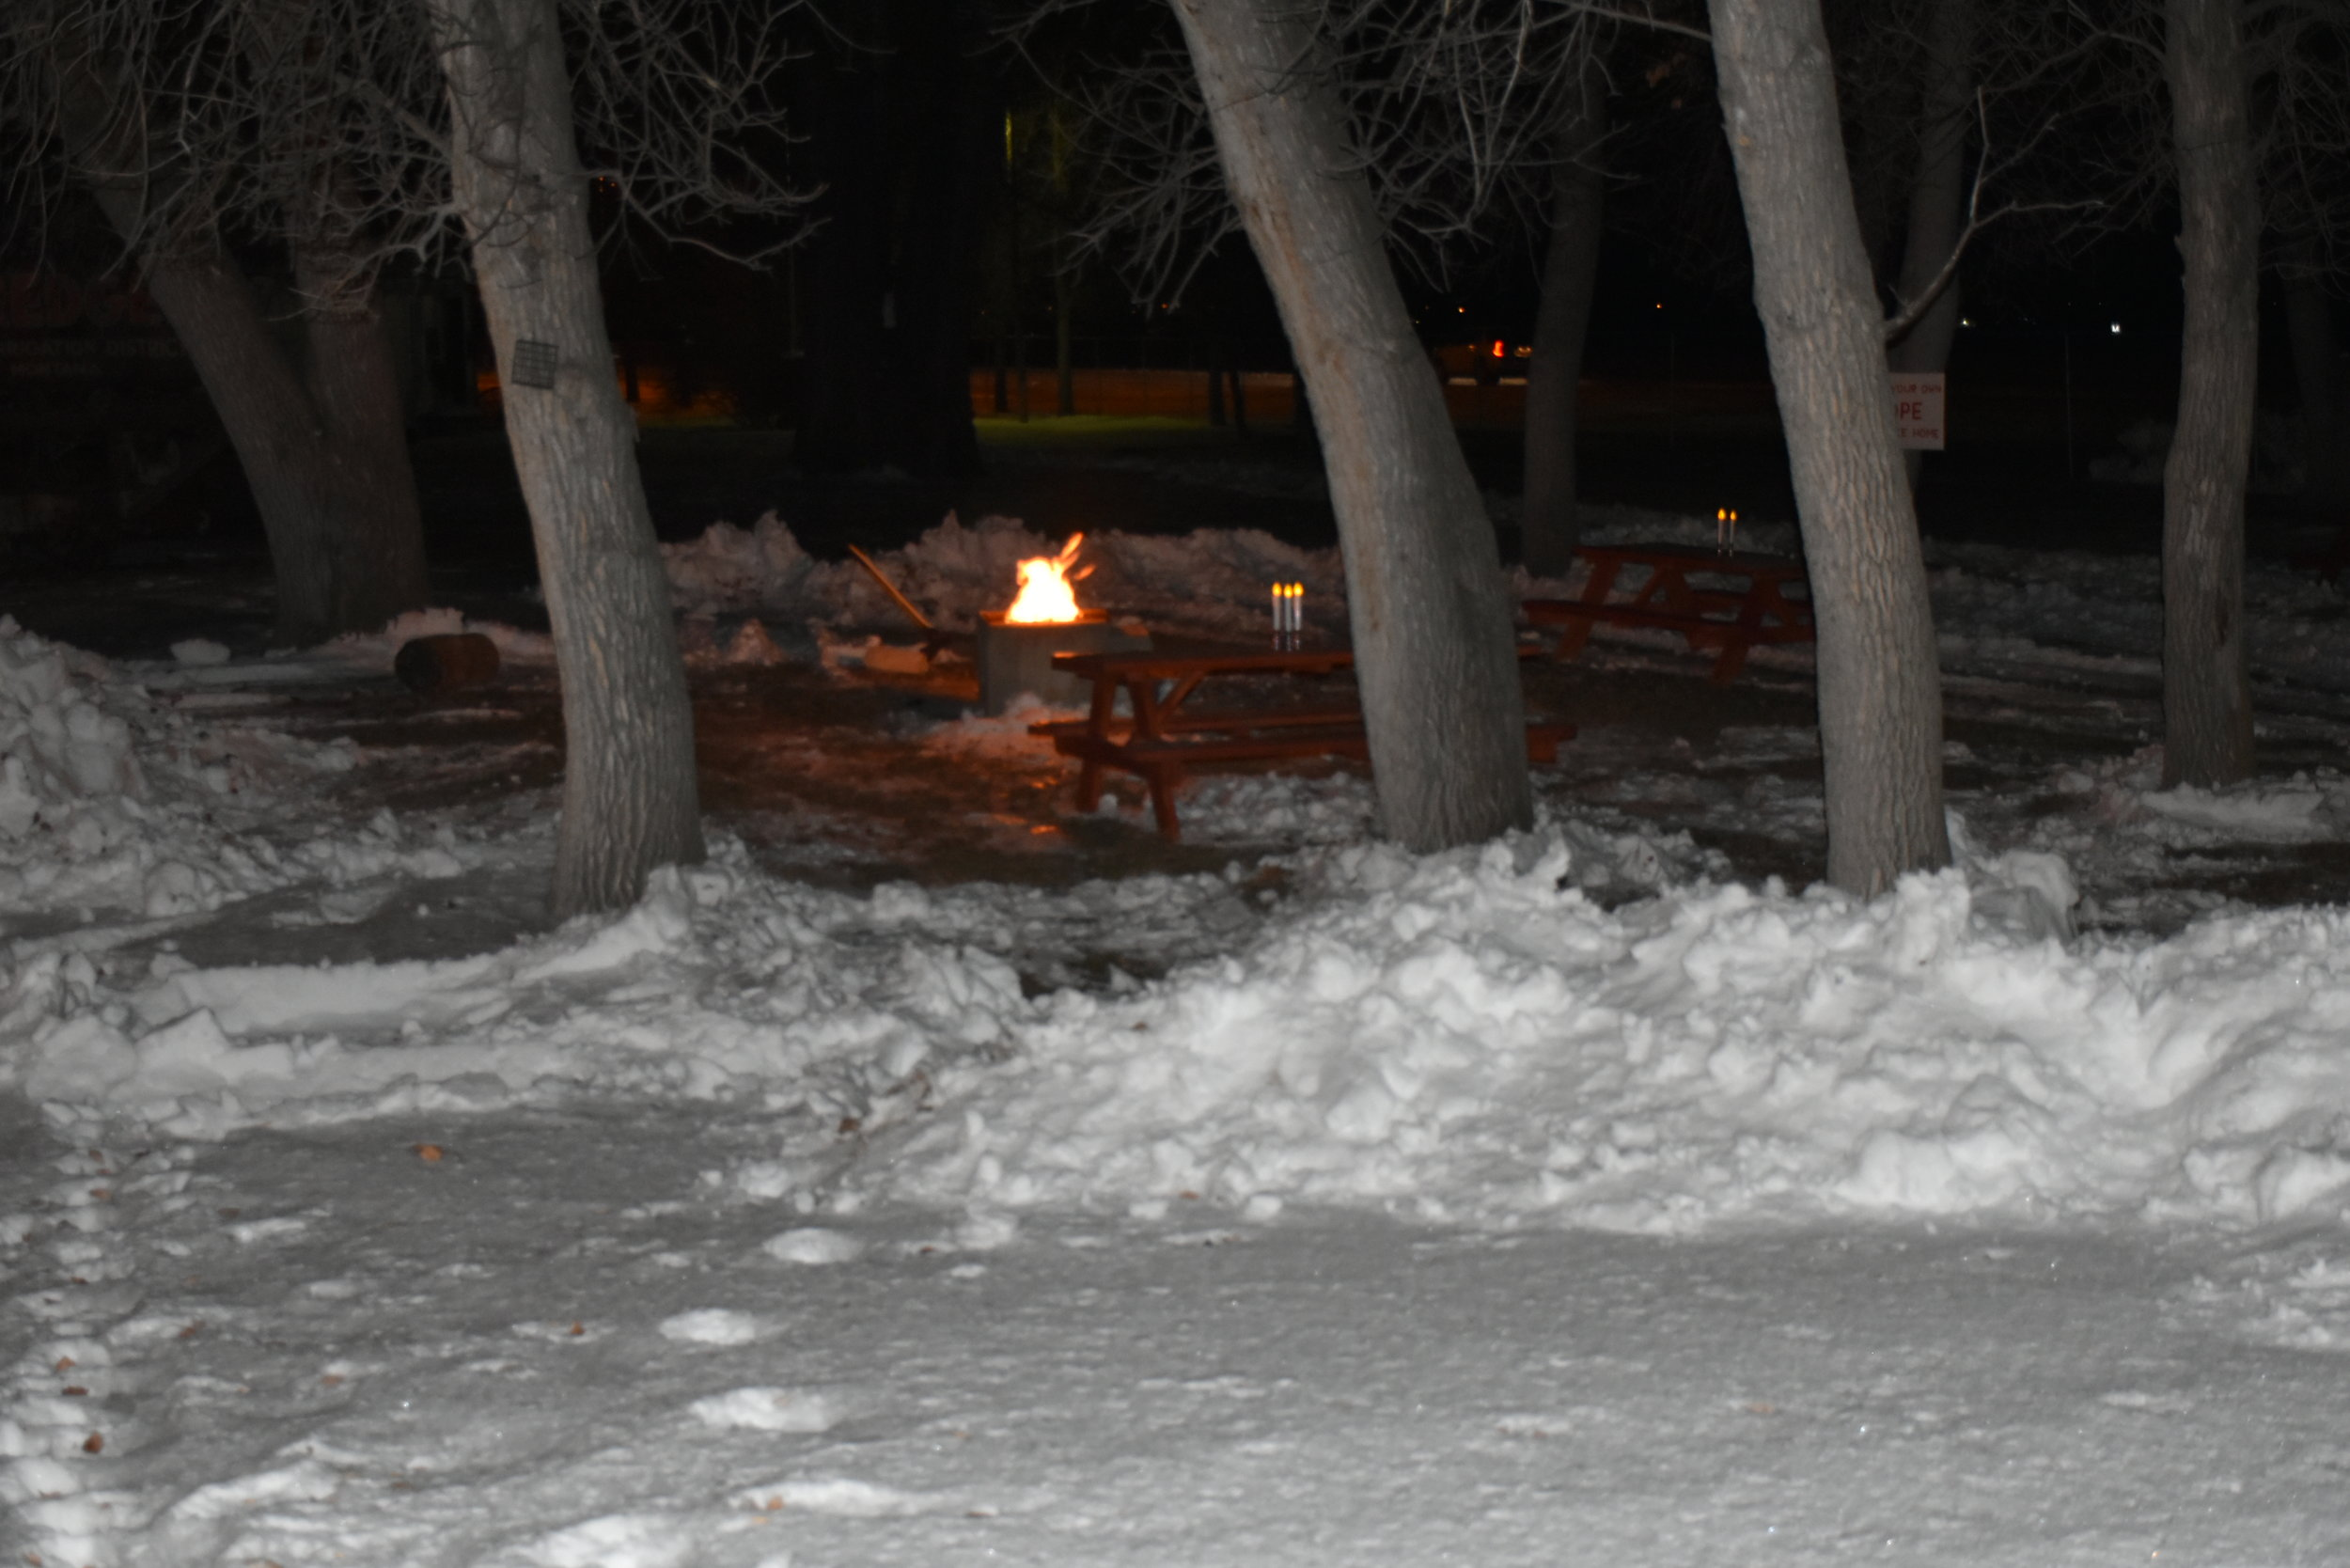 Fire pit in Winter.JPG